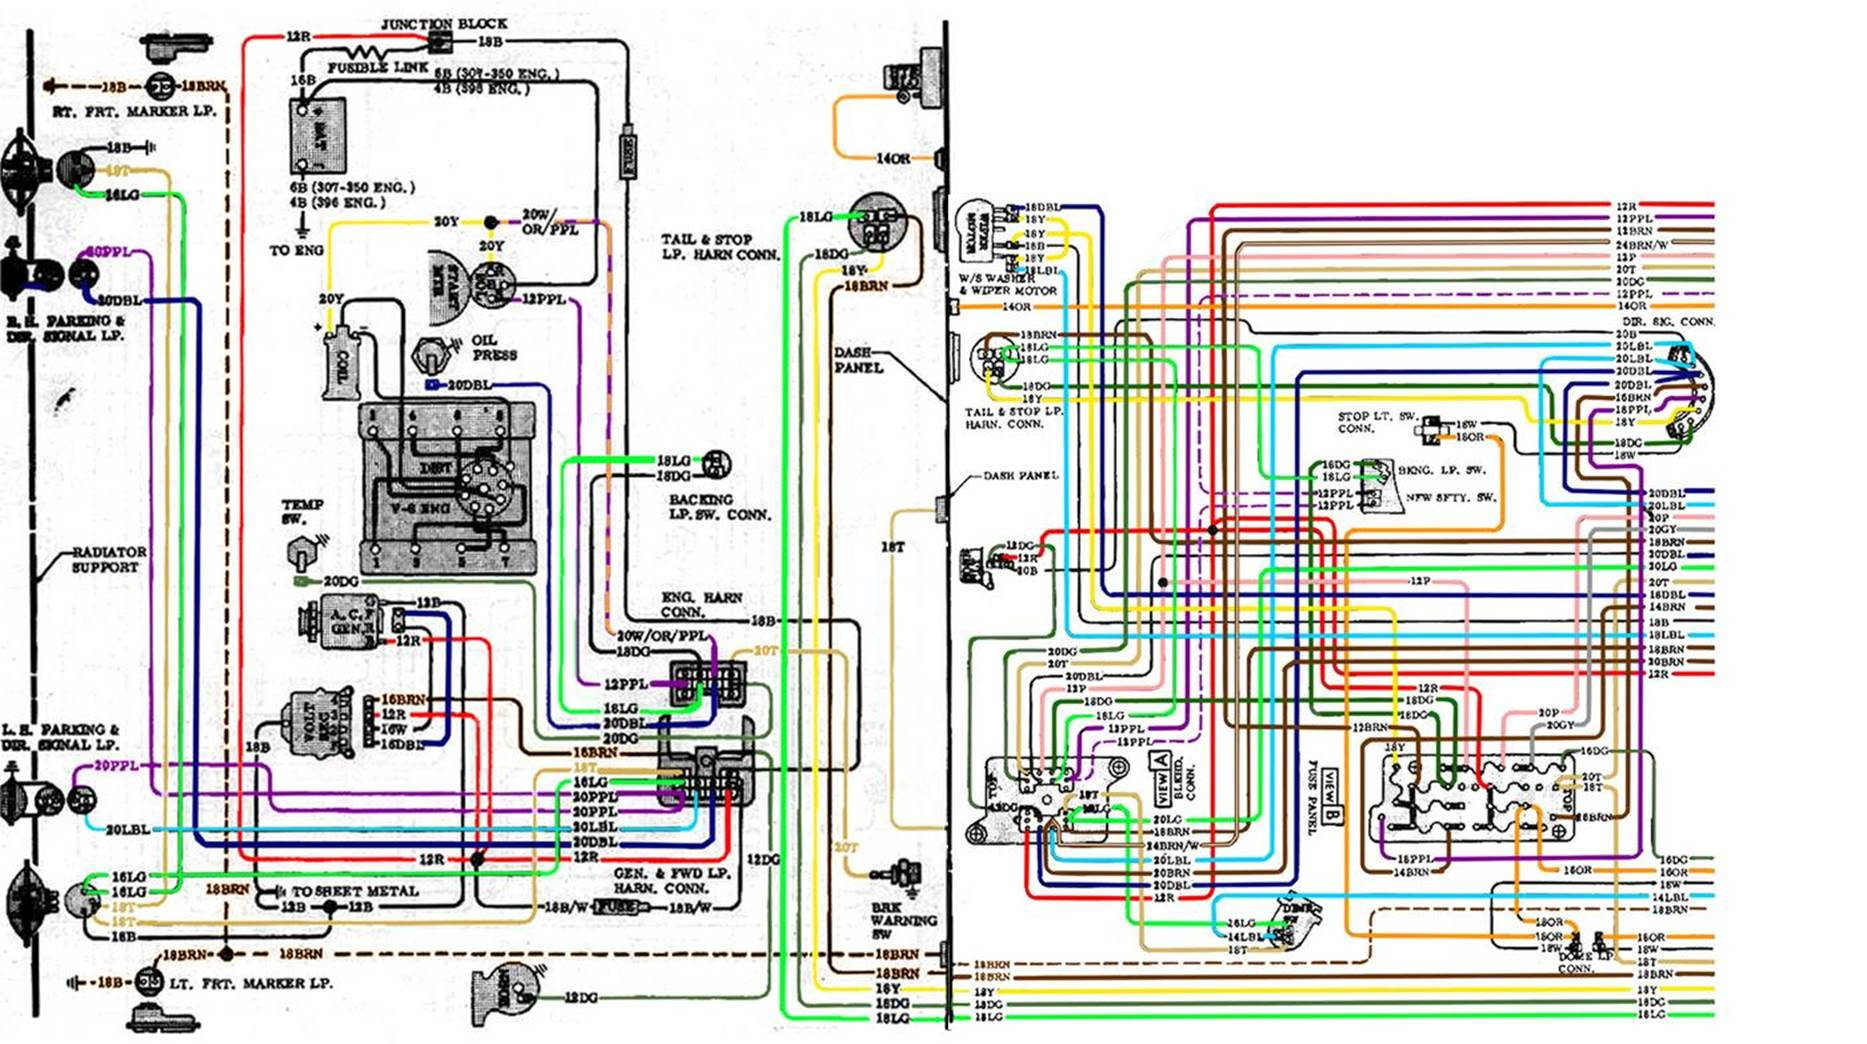 Wiring Diagram For 1969 Chevelle | Wiring Diagram on camaro strut diagram, camaro transmission diagram, camaro emergency brake diagram, camaro steering wheel, camaro fuel rail diagram, camaro radiator diagram, camaro 4x4, camaro horn diagram, camaro wiring, camaro interior, camaro exhaust manifold diagram, camaro speedometer, 1999 explorer fuse diagram, camaro brake line diagram, camaro fuse box dimensions, camaro engine, camaro rocker panel diagram, camaro hood, camaro starter diagram, camaro steering column diagram,